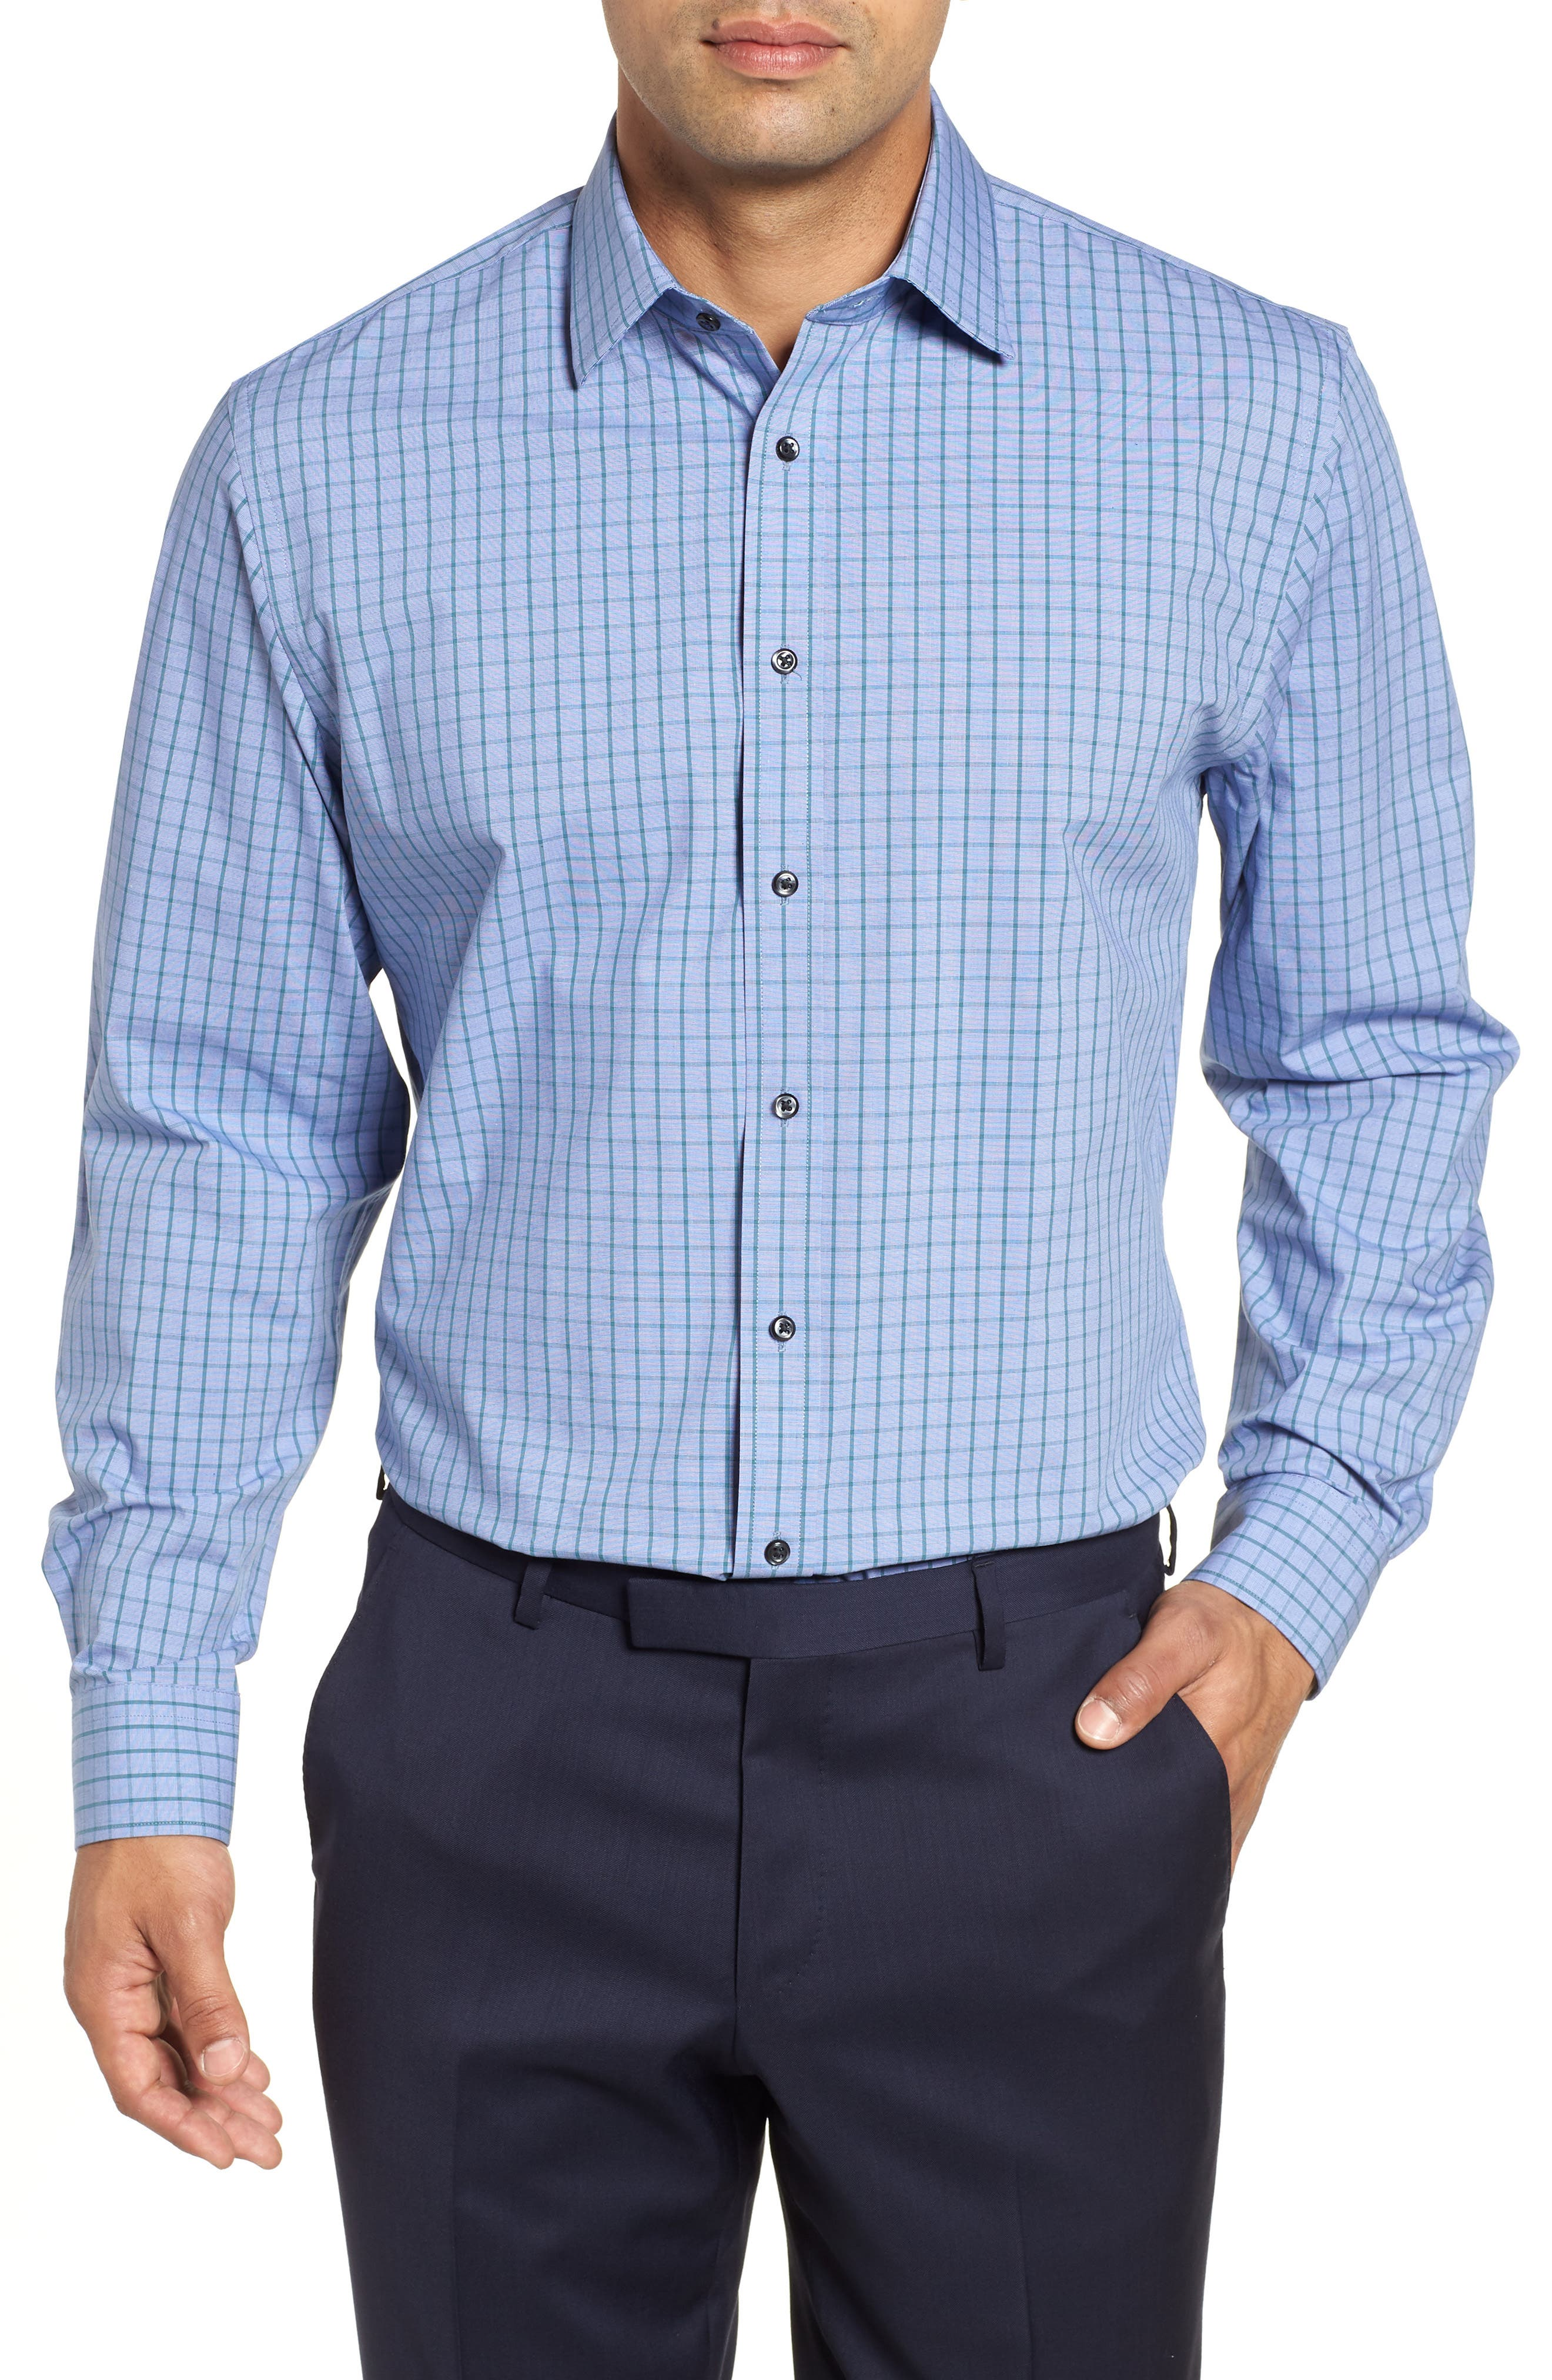 Tech-Smart Traditional Fit Stretch Check Dress Shirt,                             Main thumbnail 1, color,                             Teal Hydro